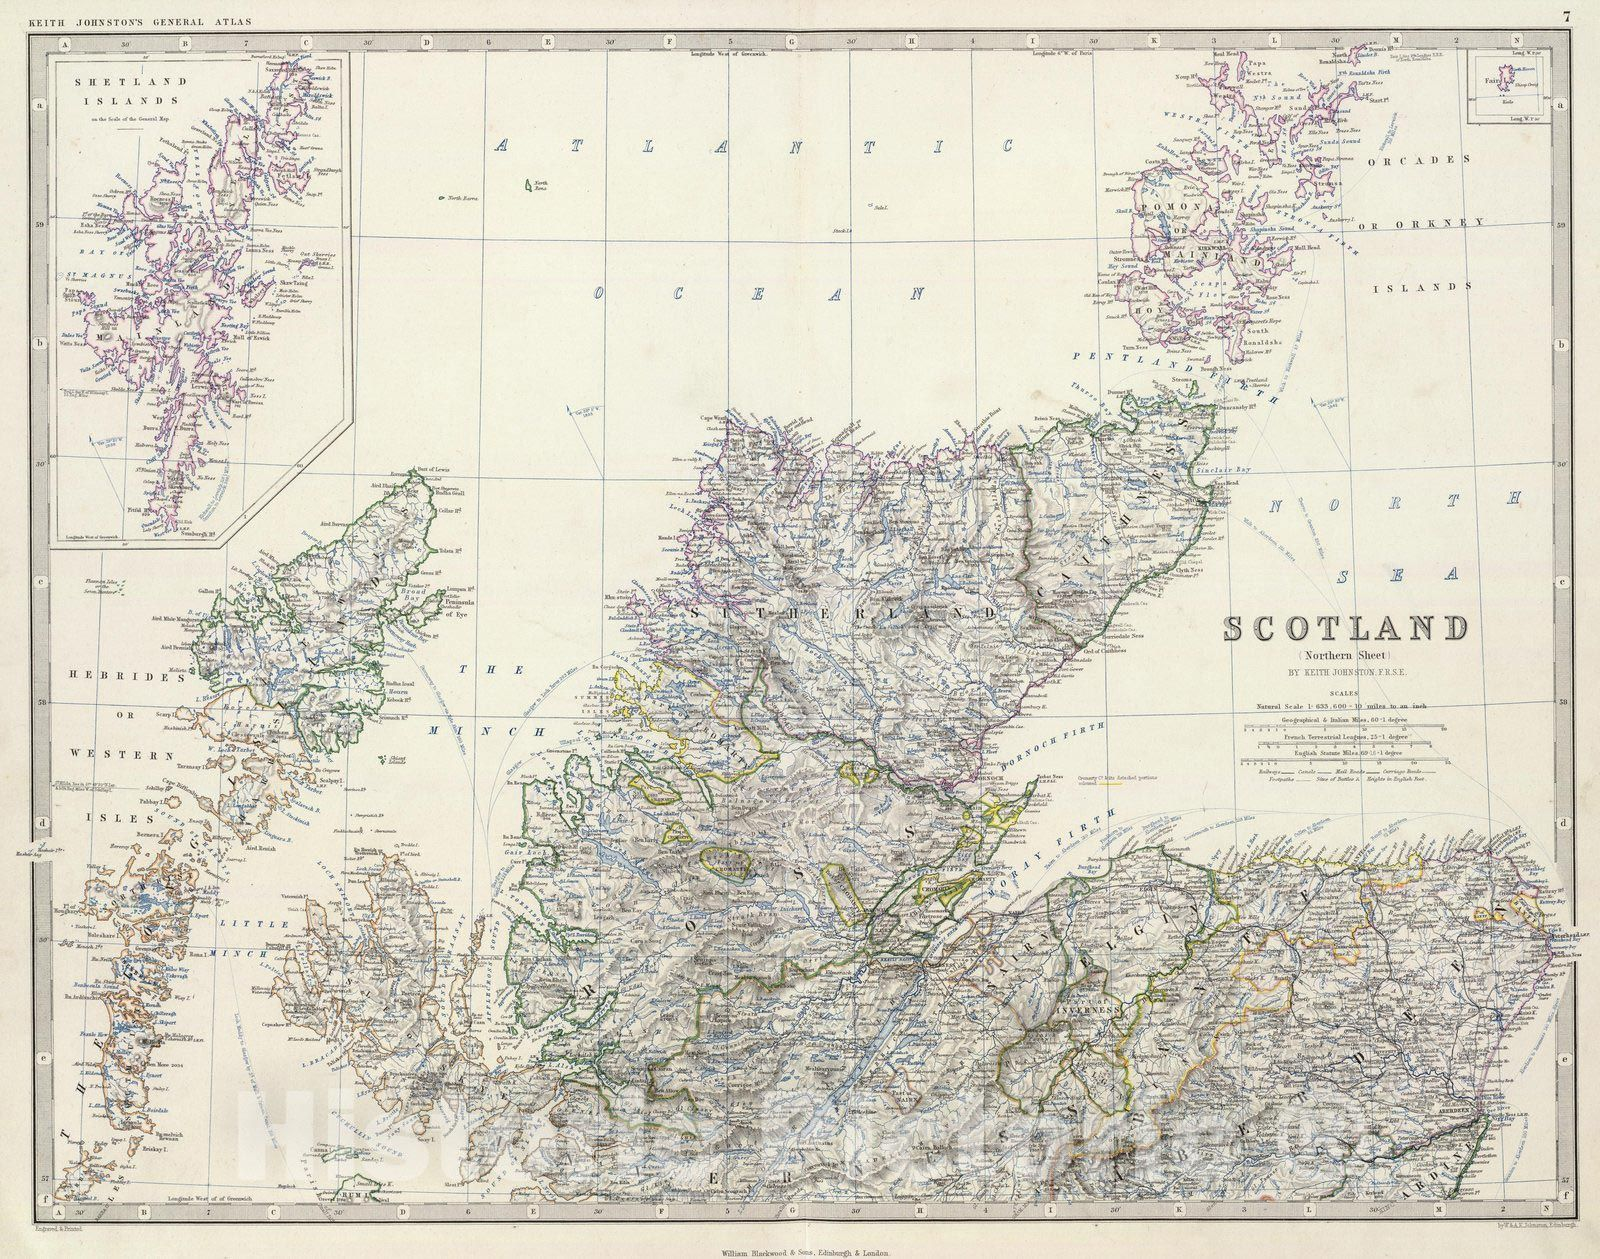 <p>Scotland, northern sheet, by Keith Johnston, F.R.S.E. Engraved & printed by W. & A.K. Johnston, Edinburgh. William Blackwood & Sons, Edinburgh & London, (1861) | The royal atlas of modern geography, exhibiting, in a series of entirely original and authentic maps, the present condition of geographical discovery and research in the several countries, empires, and states of the world by Alexander Keith Johnston ... With a special index to each map. William Blackwood and Sons, Edi